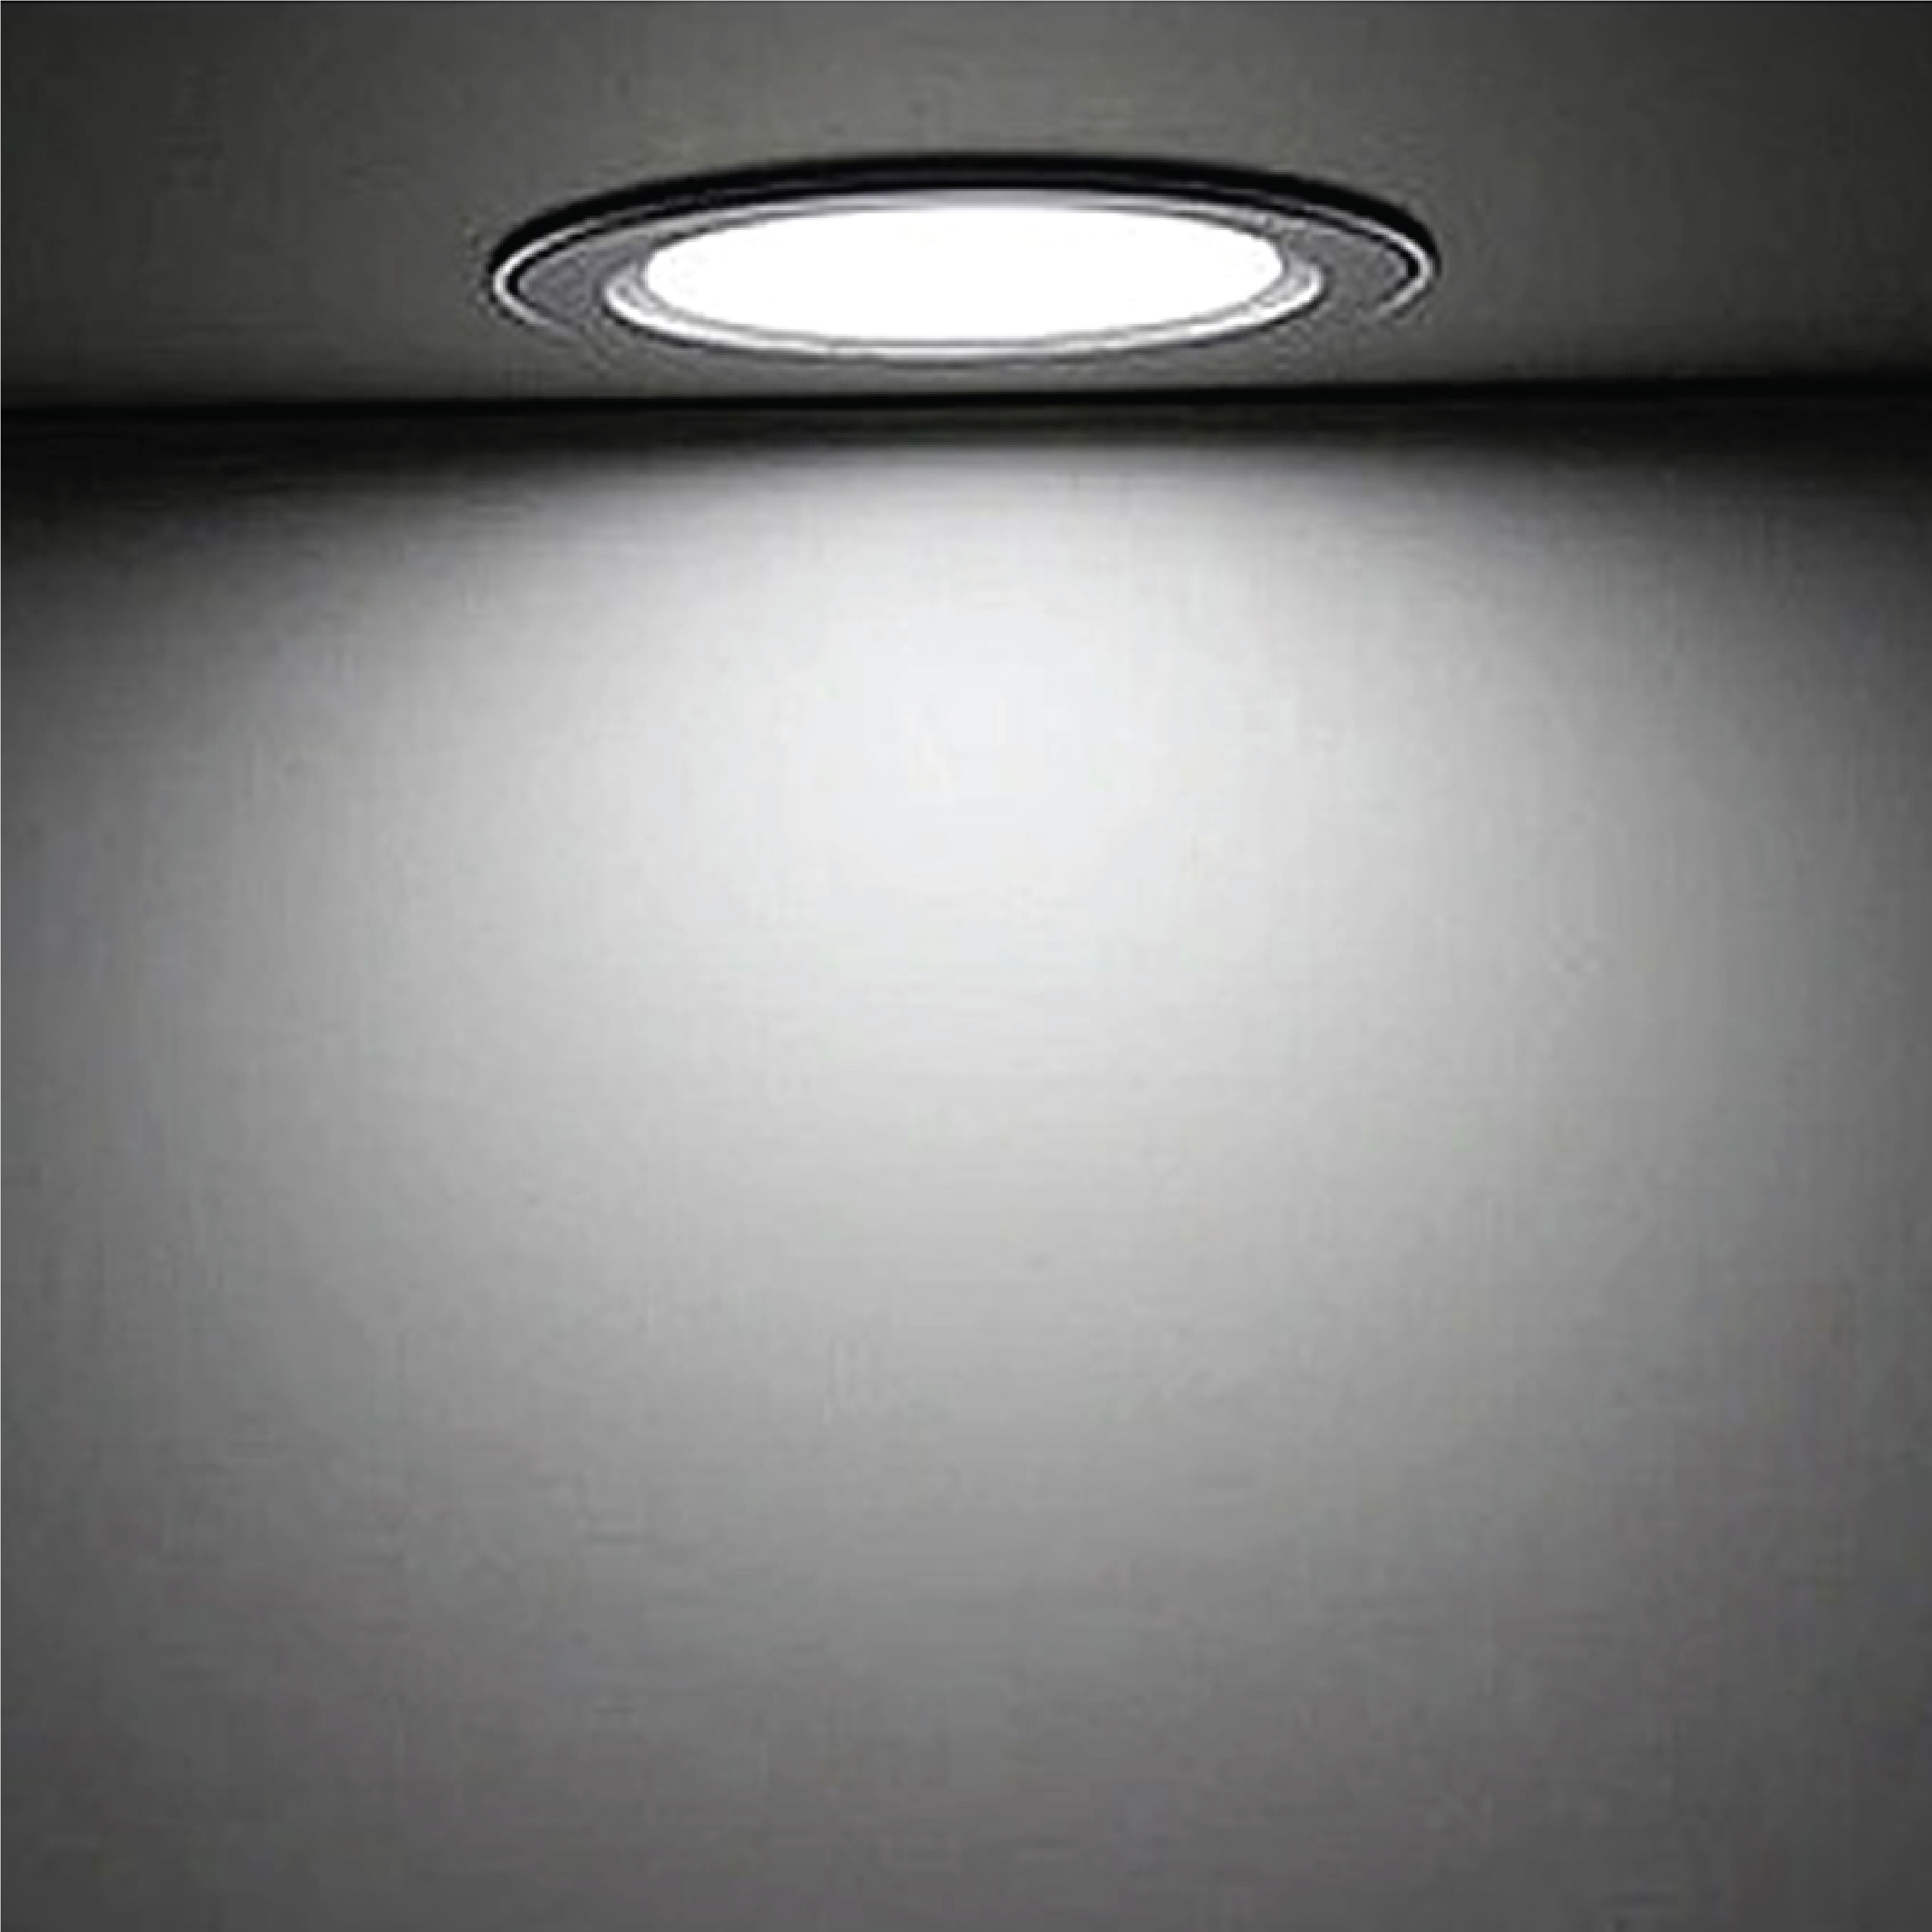 OMEX - RD Slim panle Light Led 3w WH